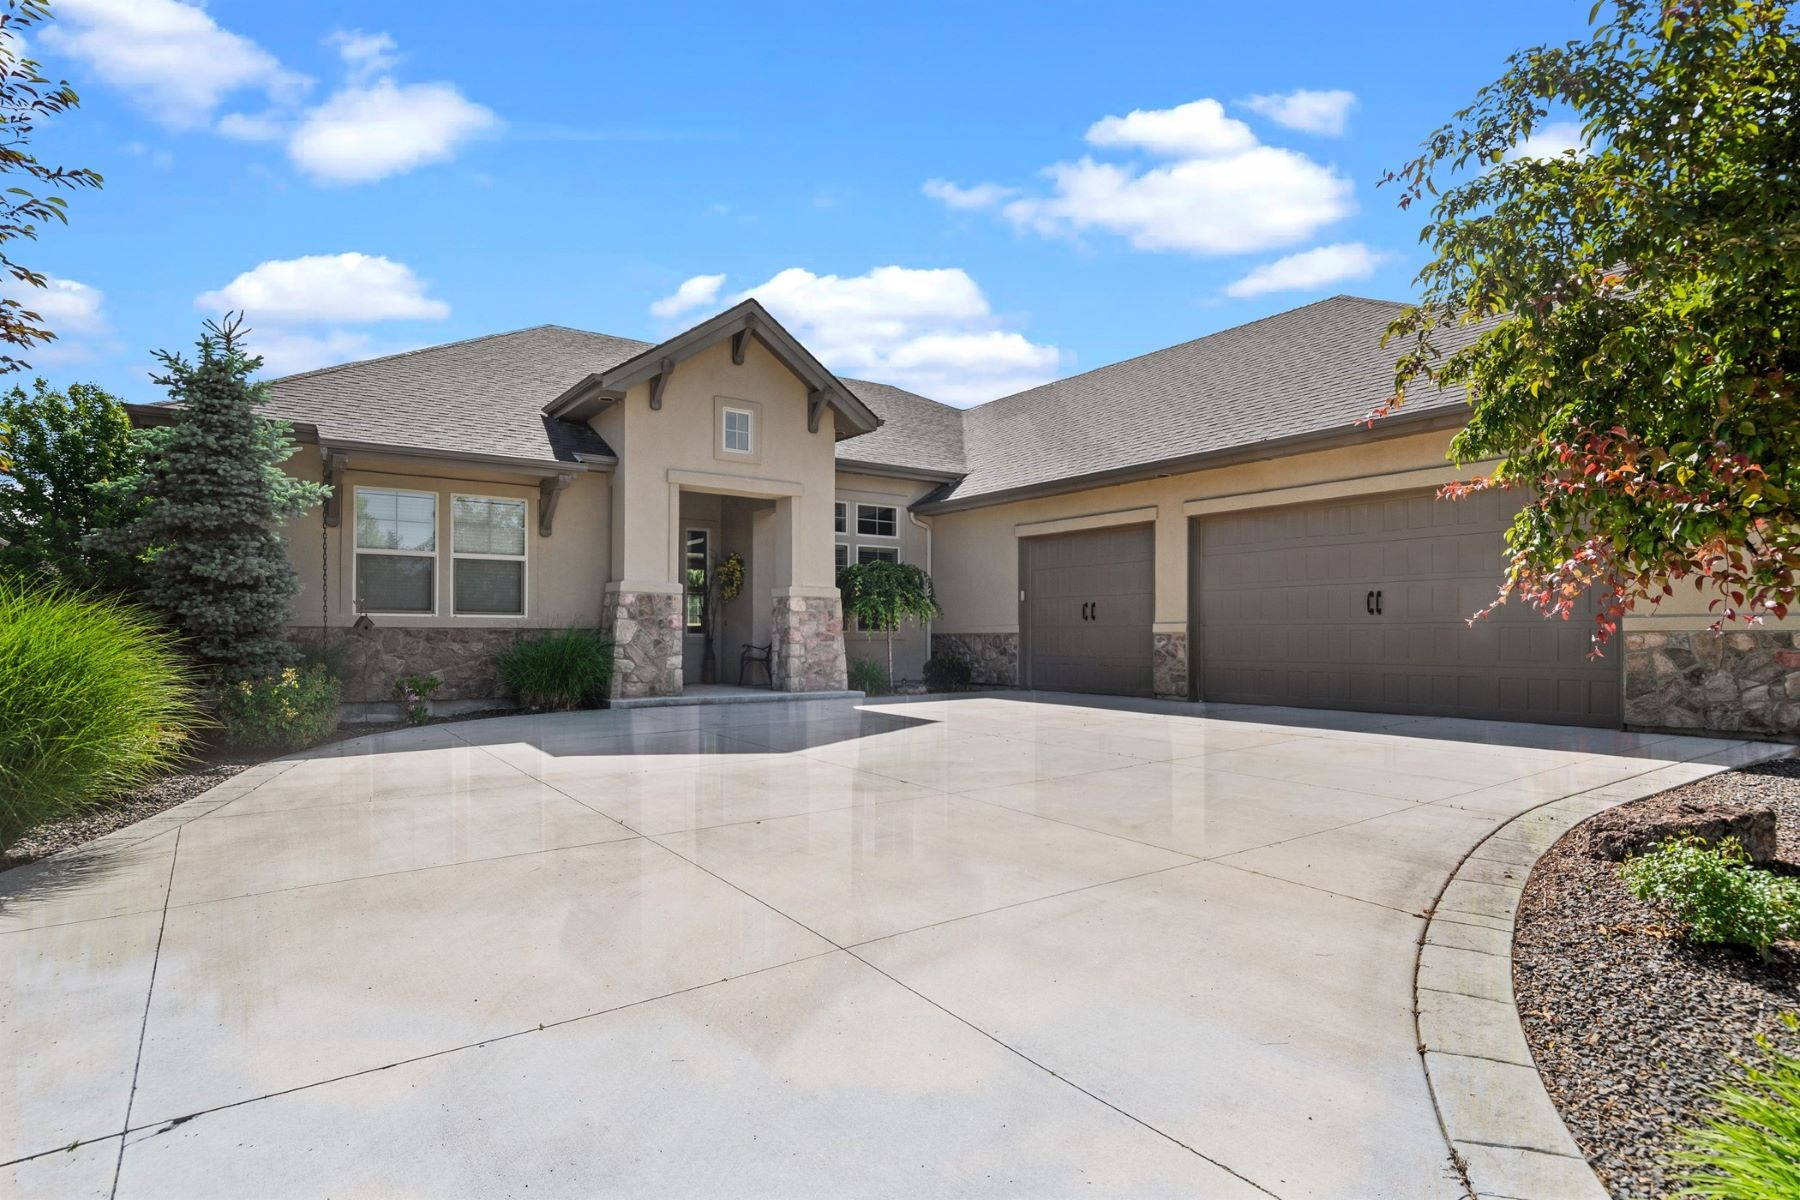 Single Family Homes のために 売買 アット 4159 Greenspire Dr., Meridian 4159 W Greenspire Dr, Meridian, アイダホ 83646 アメリカ